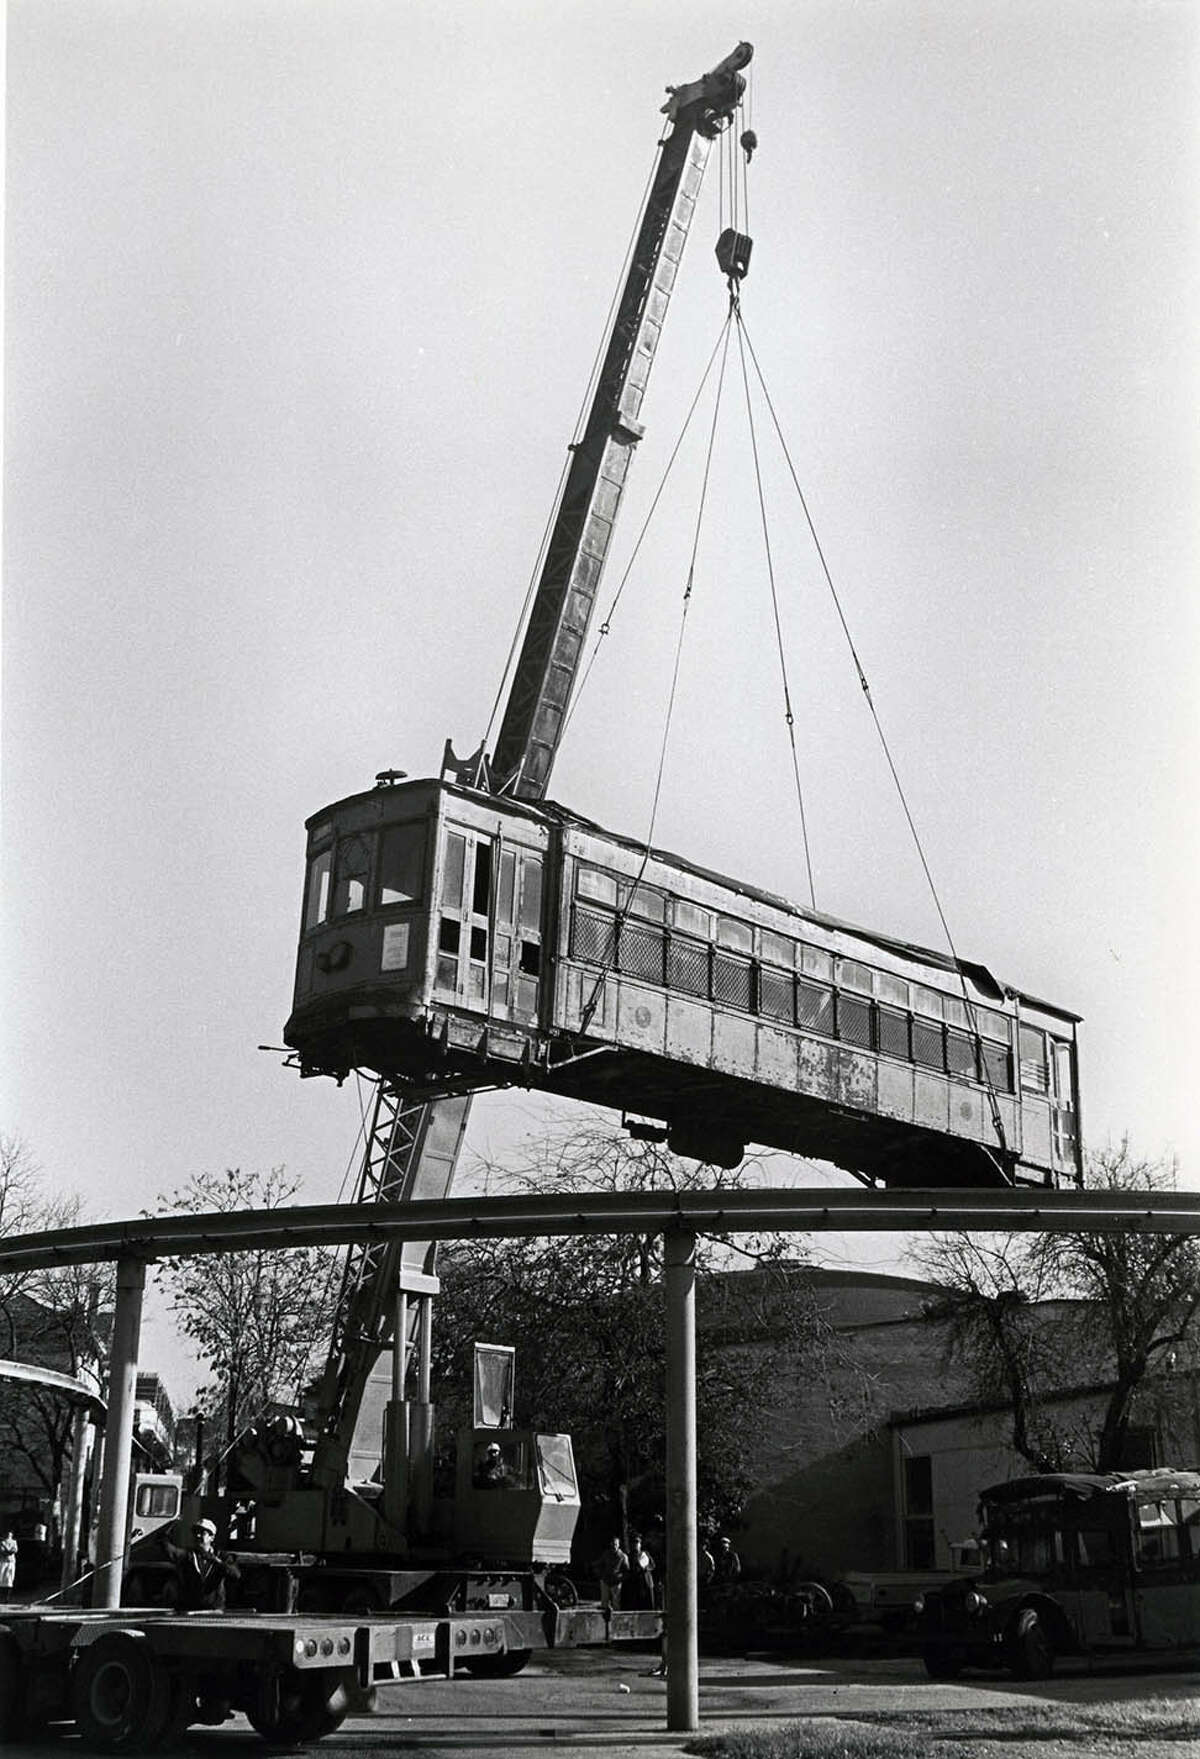 Built in 1913, it first was transferred to the Witte Museum in 1913, when San Antonio converted its public transportation system from streetcars to buses. After HemisFair '68, it went to a Museum of Transportation developed on the former fairgrounds. Because of its size, the streetcar always was stored outside and needed considerable renovation before it could be repurposed as a 'moving exhibit' at SAMA.